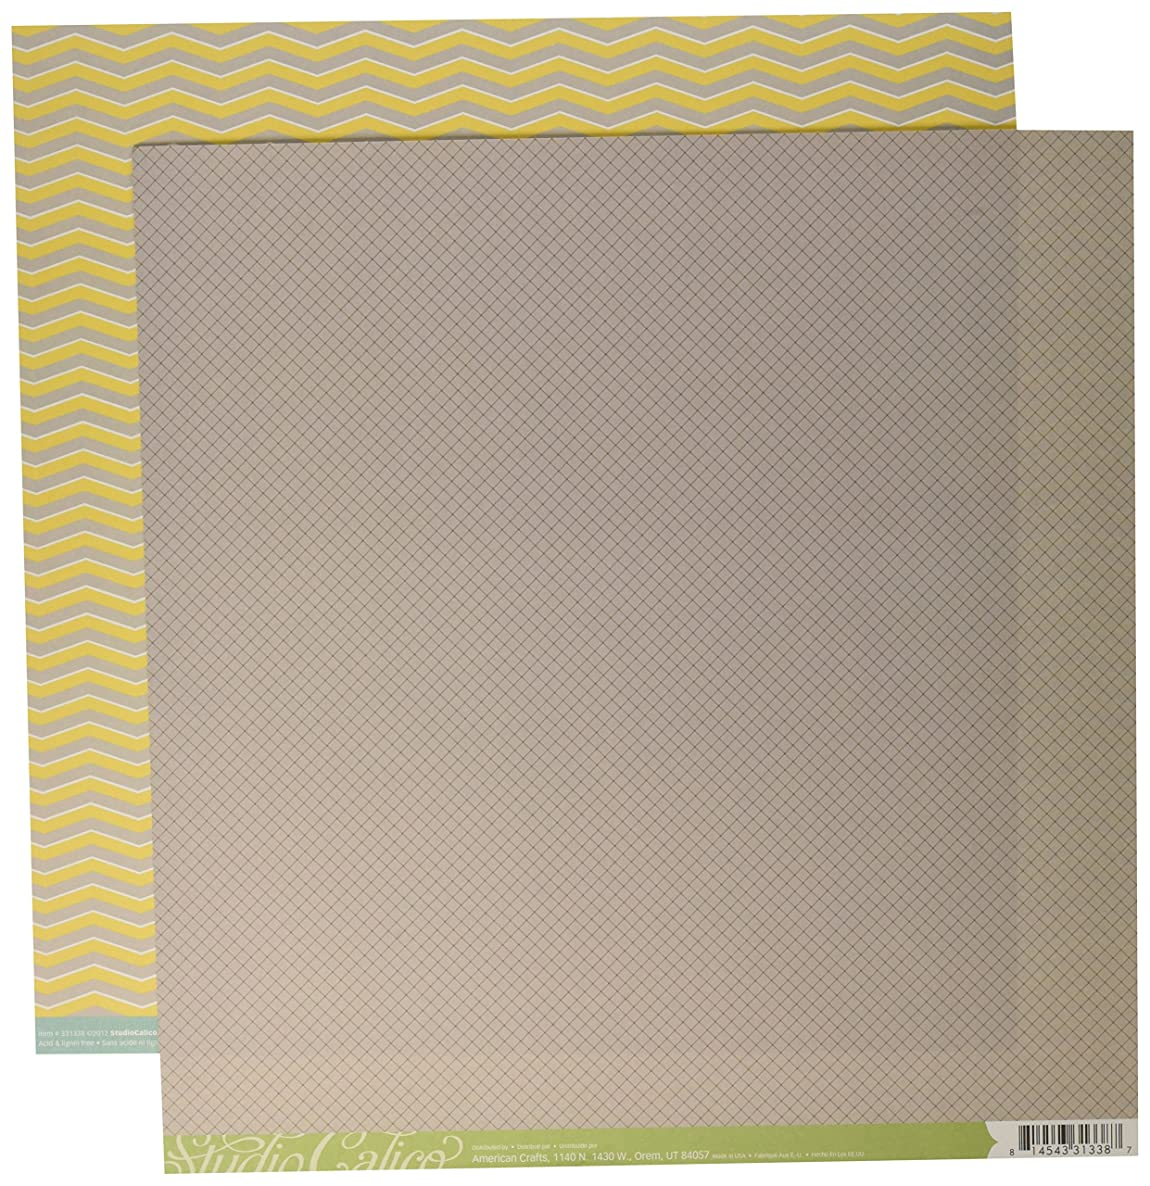 American Crafts Snippets Double-Sided Cardstock 12